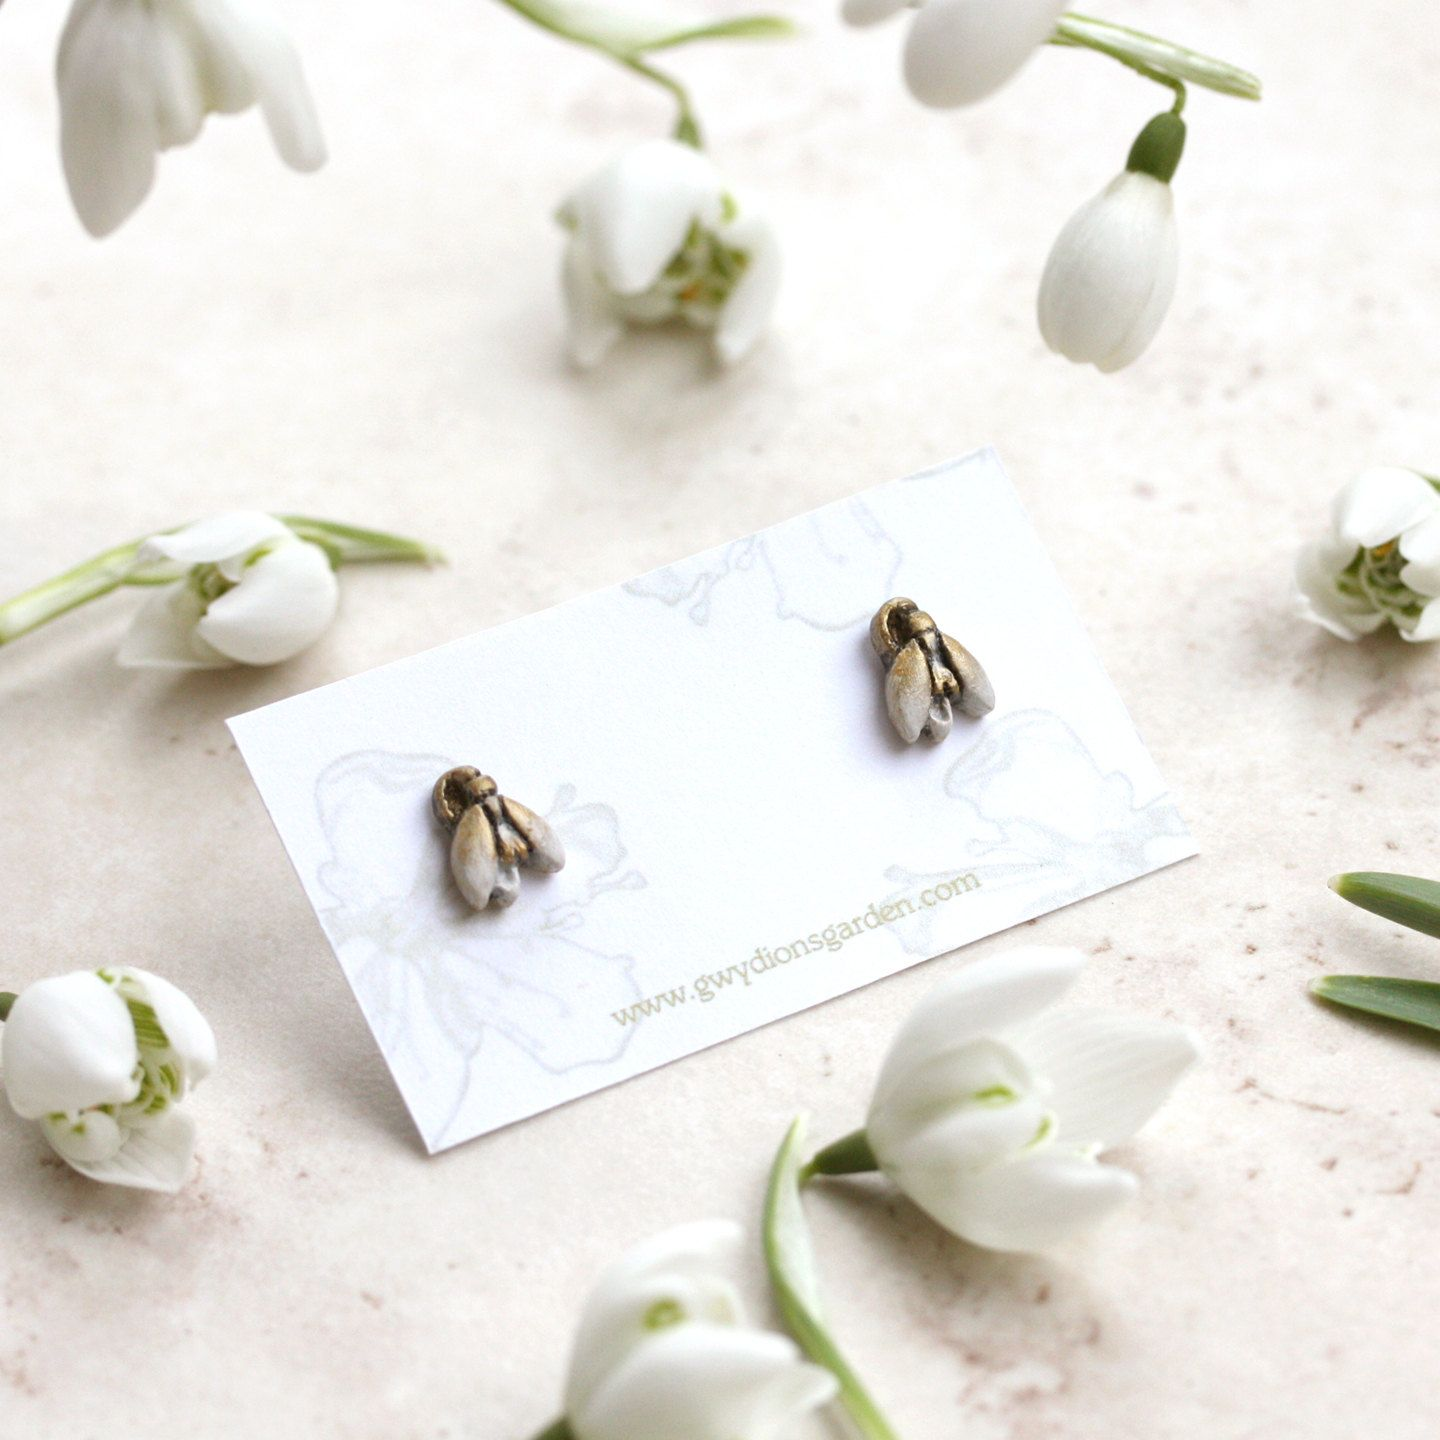 Snowdrop Earrings, Spring Flower Studs, Imbolc Jewelry, Tiny Snowdrops, Botanical Earrings, Snow Drop Posts, Candlemas Jewellery, Snowdrops by GwydionsGarden on Etsy